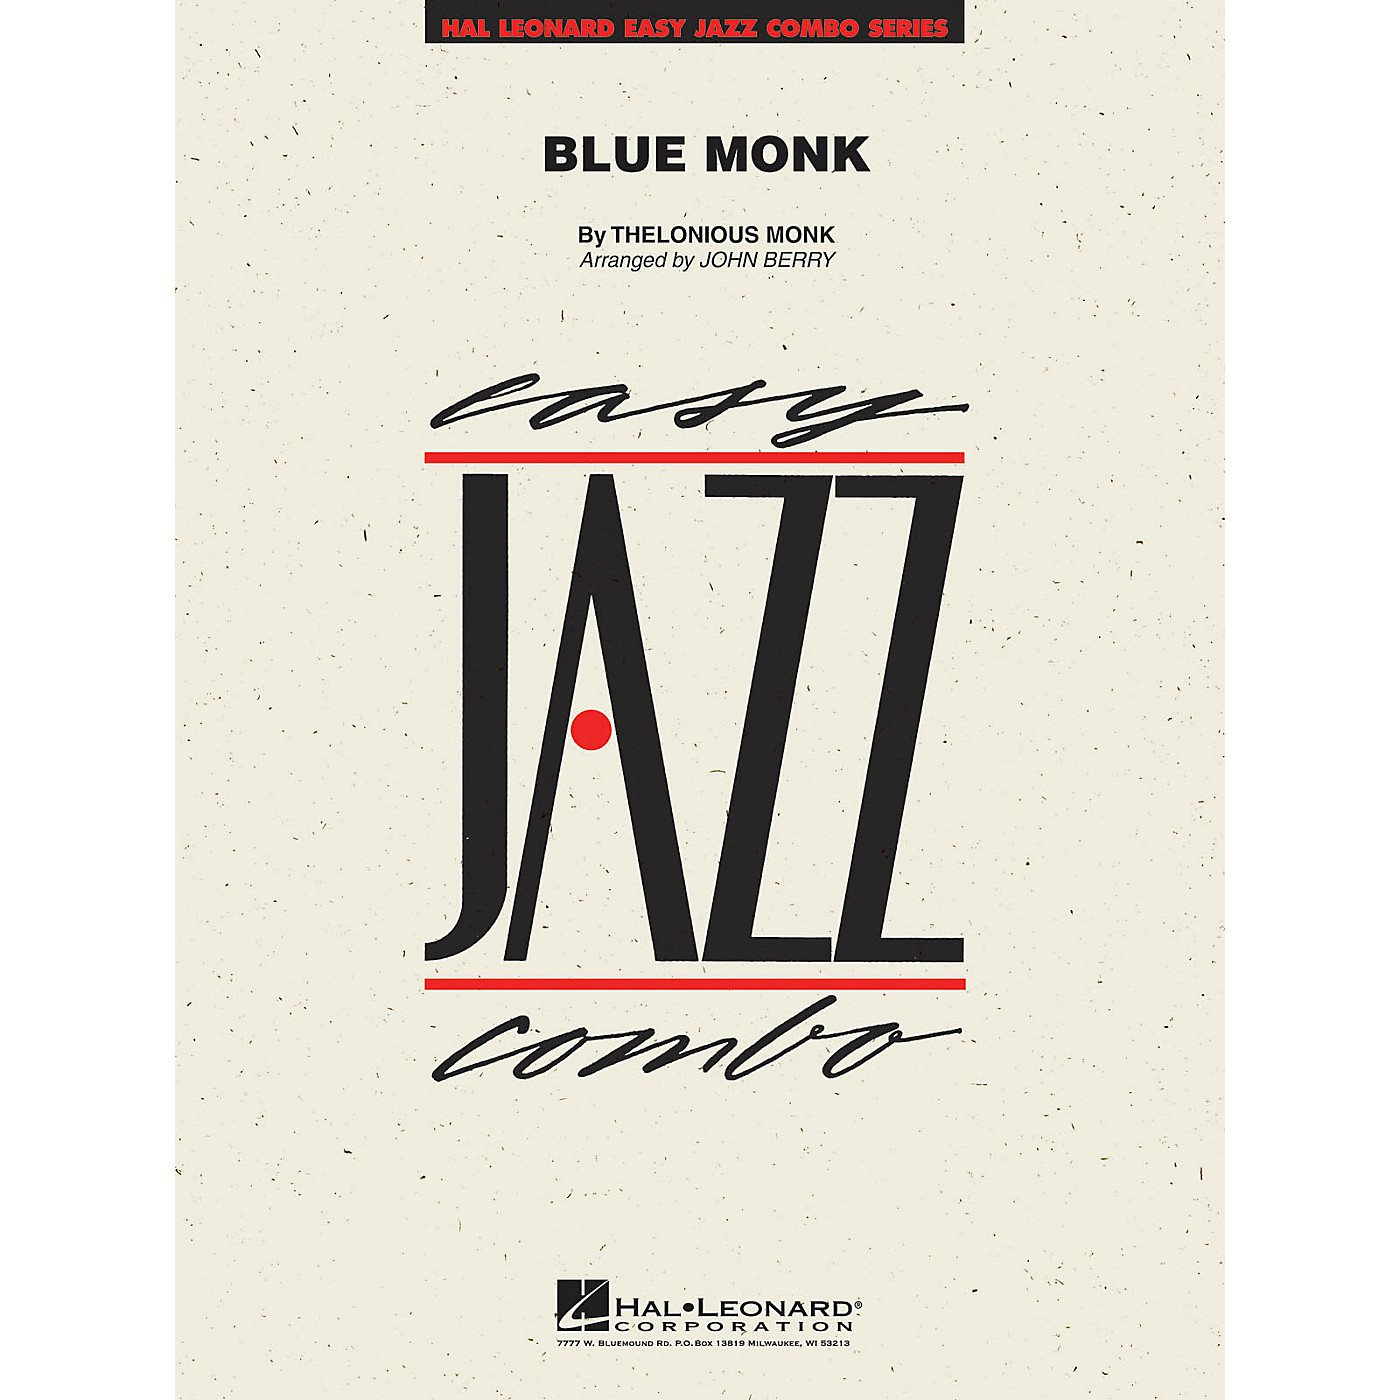 Hal Leonard Blue Monk Jazz Band Level 2 Arranged by John Berry thumbnail